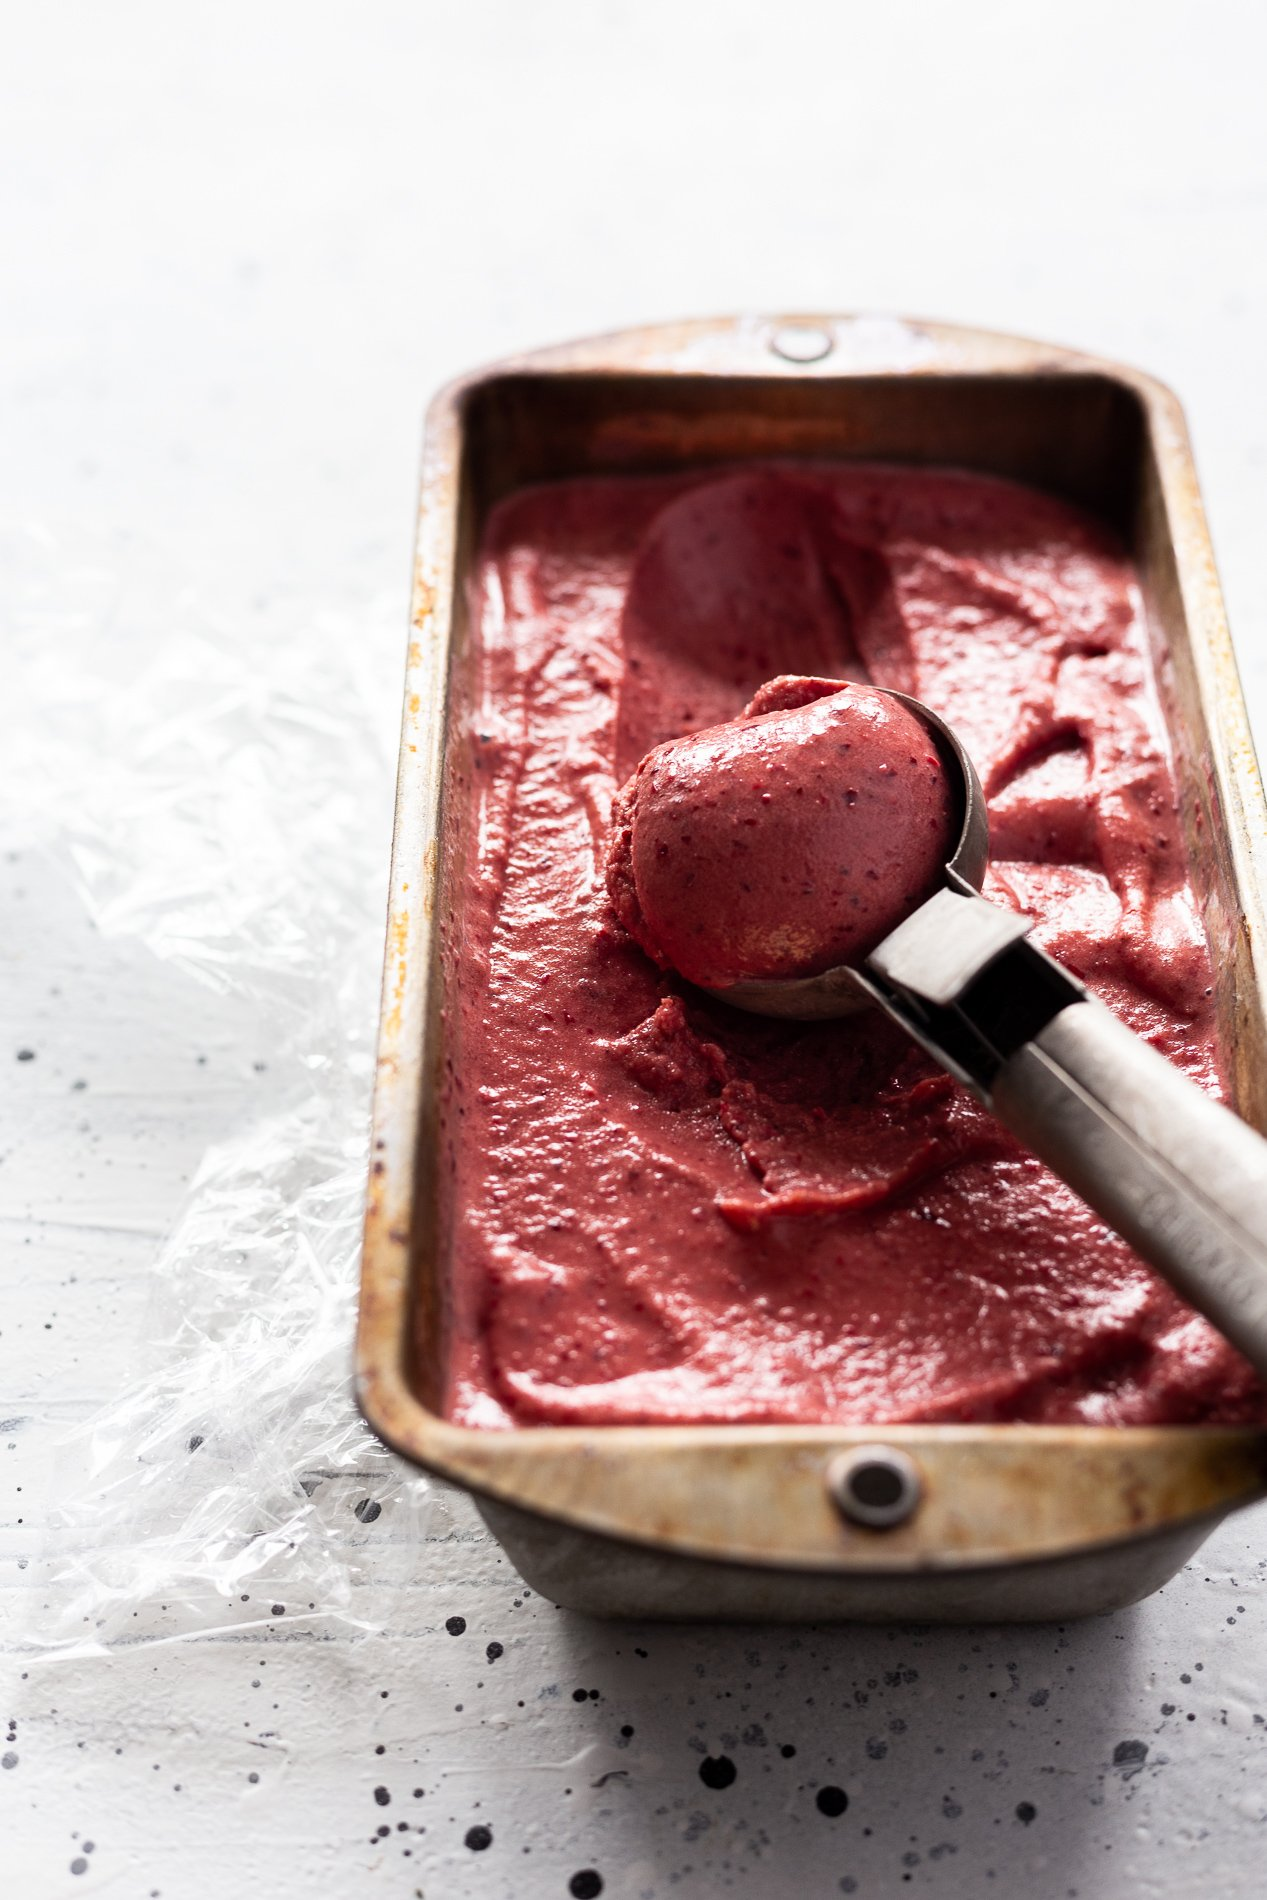 angled view of a tin of instant cherry ice cream with a scoop taken out of it